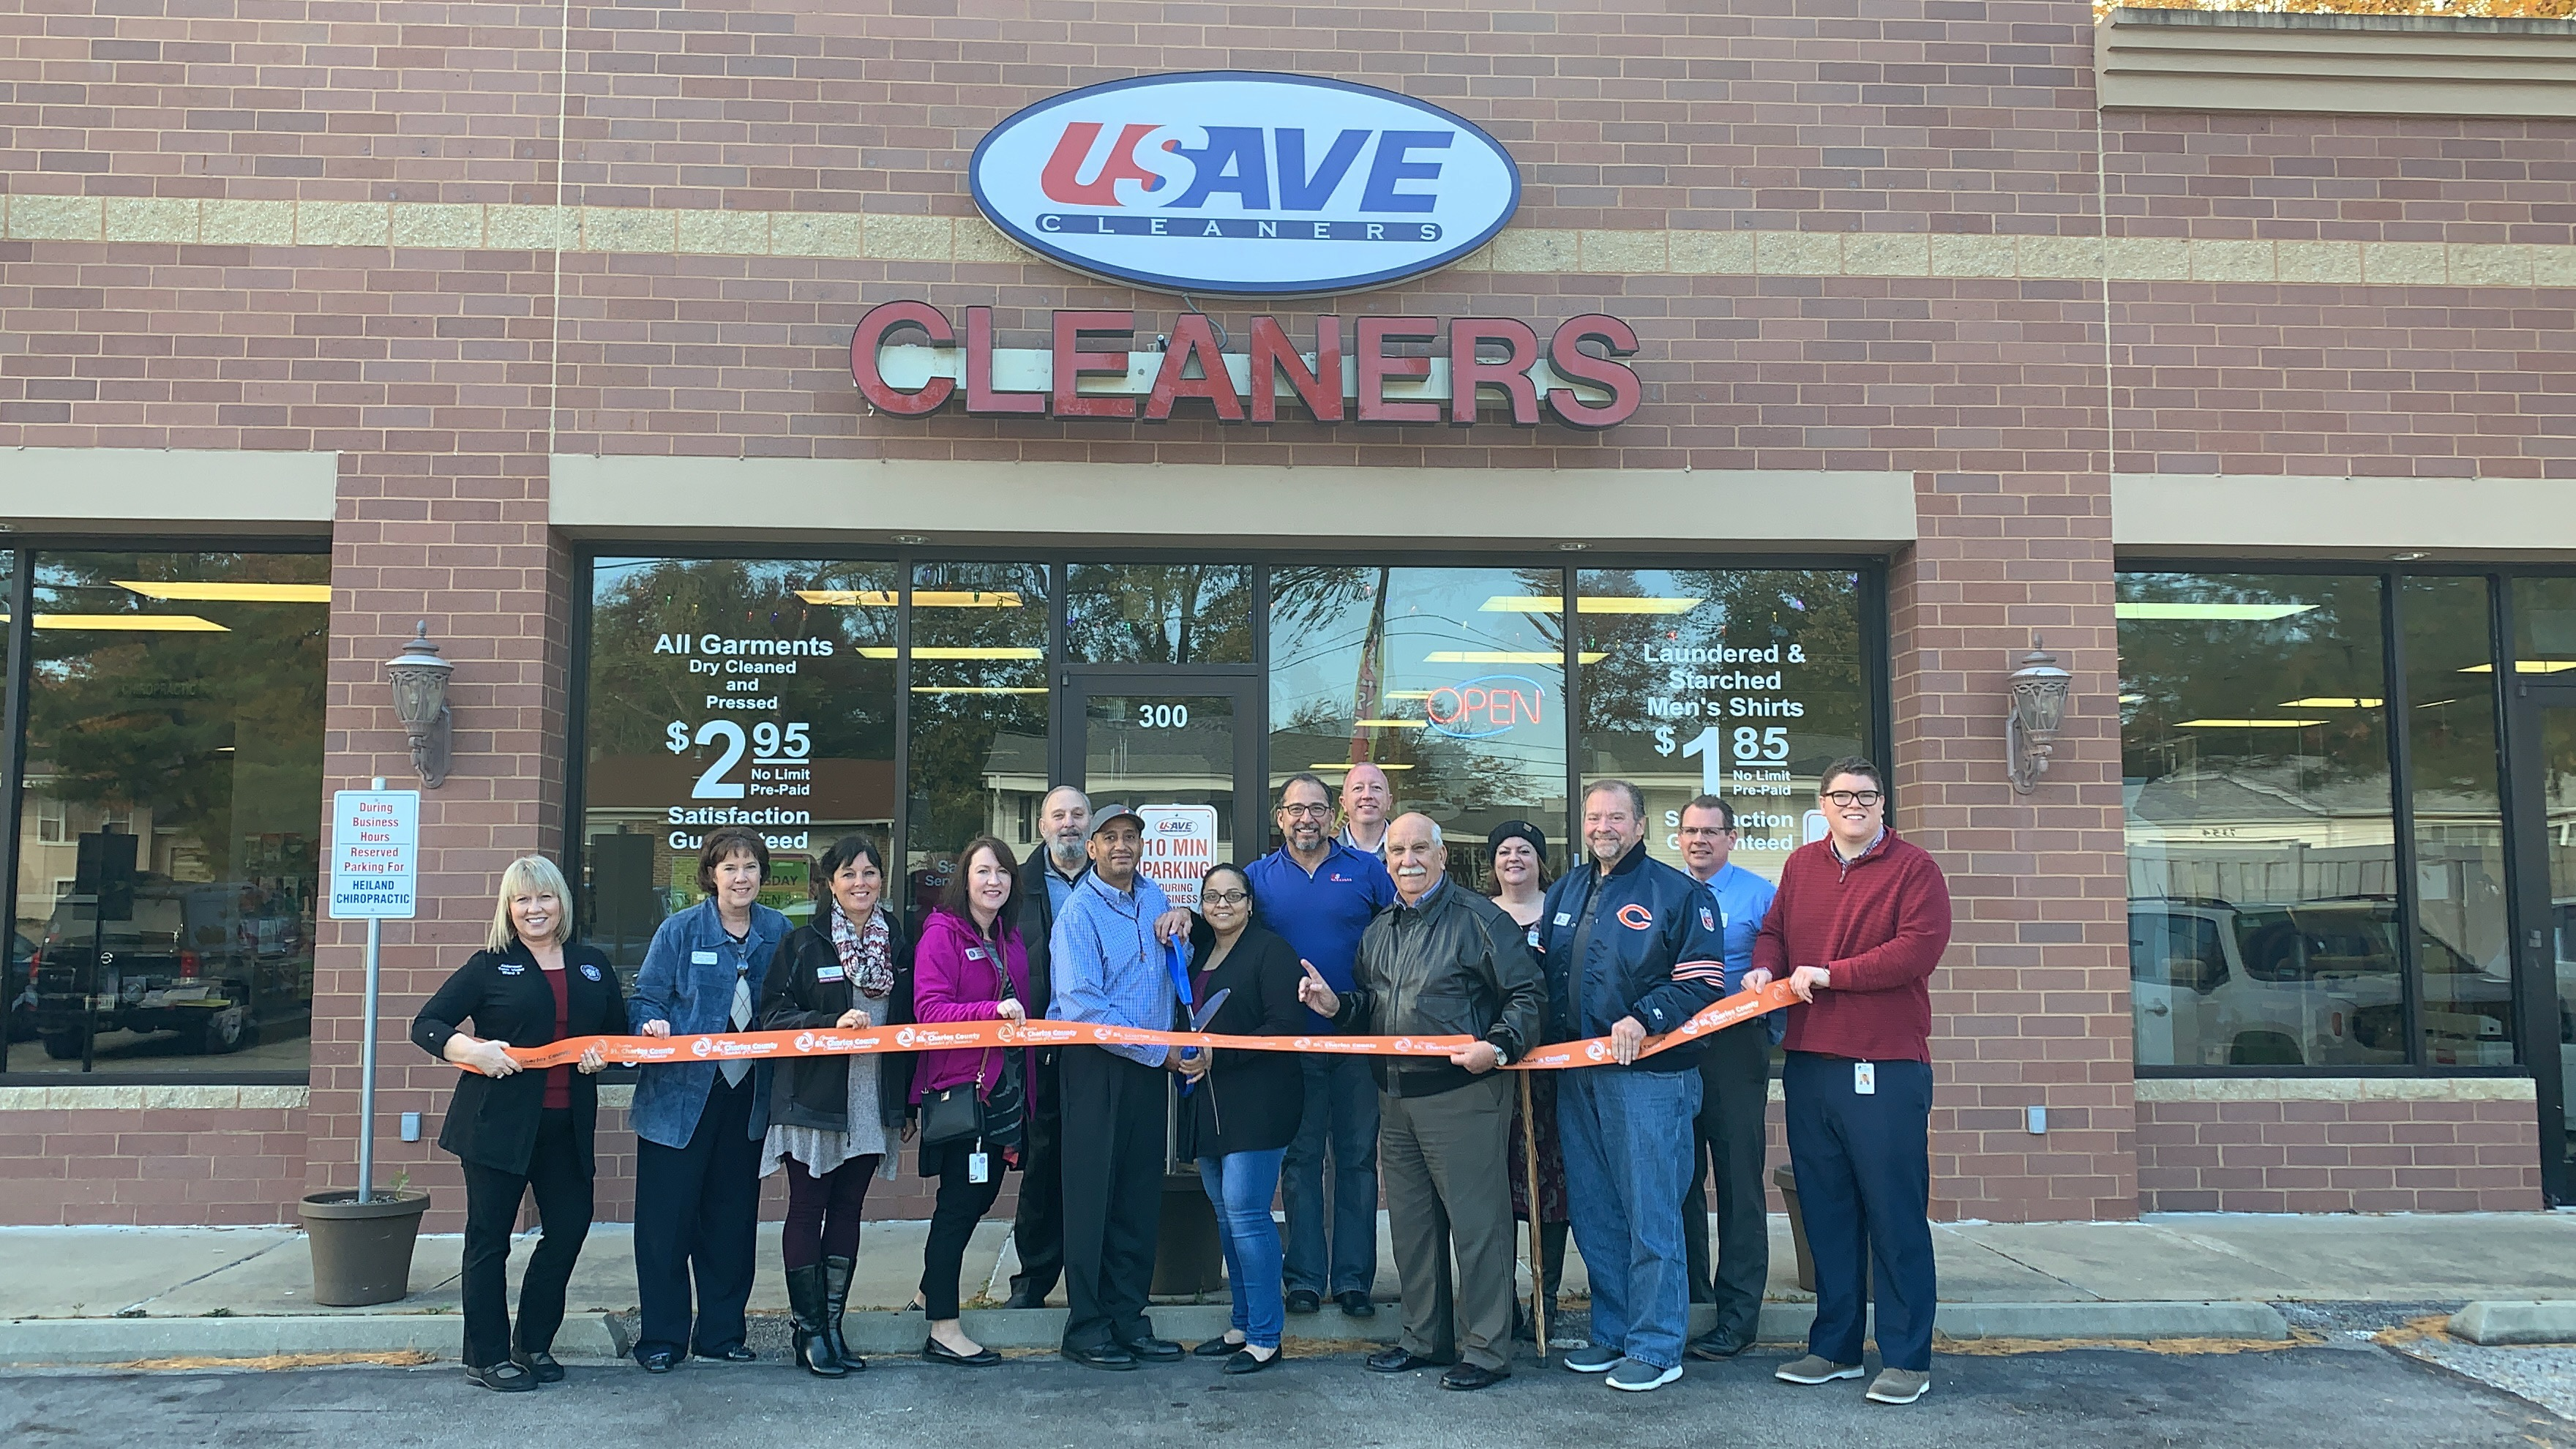 Image for USave Cleaners Celebrates  Grand Opening with Ribbon Cutting